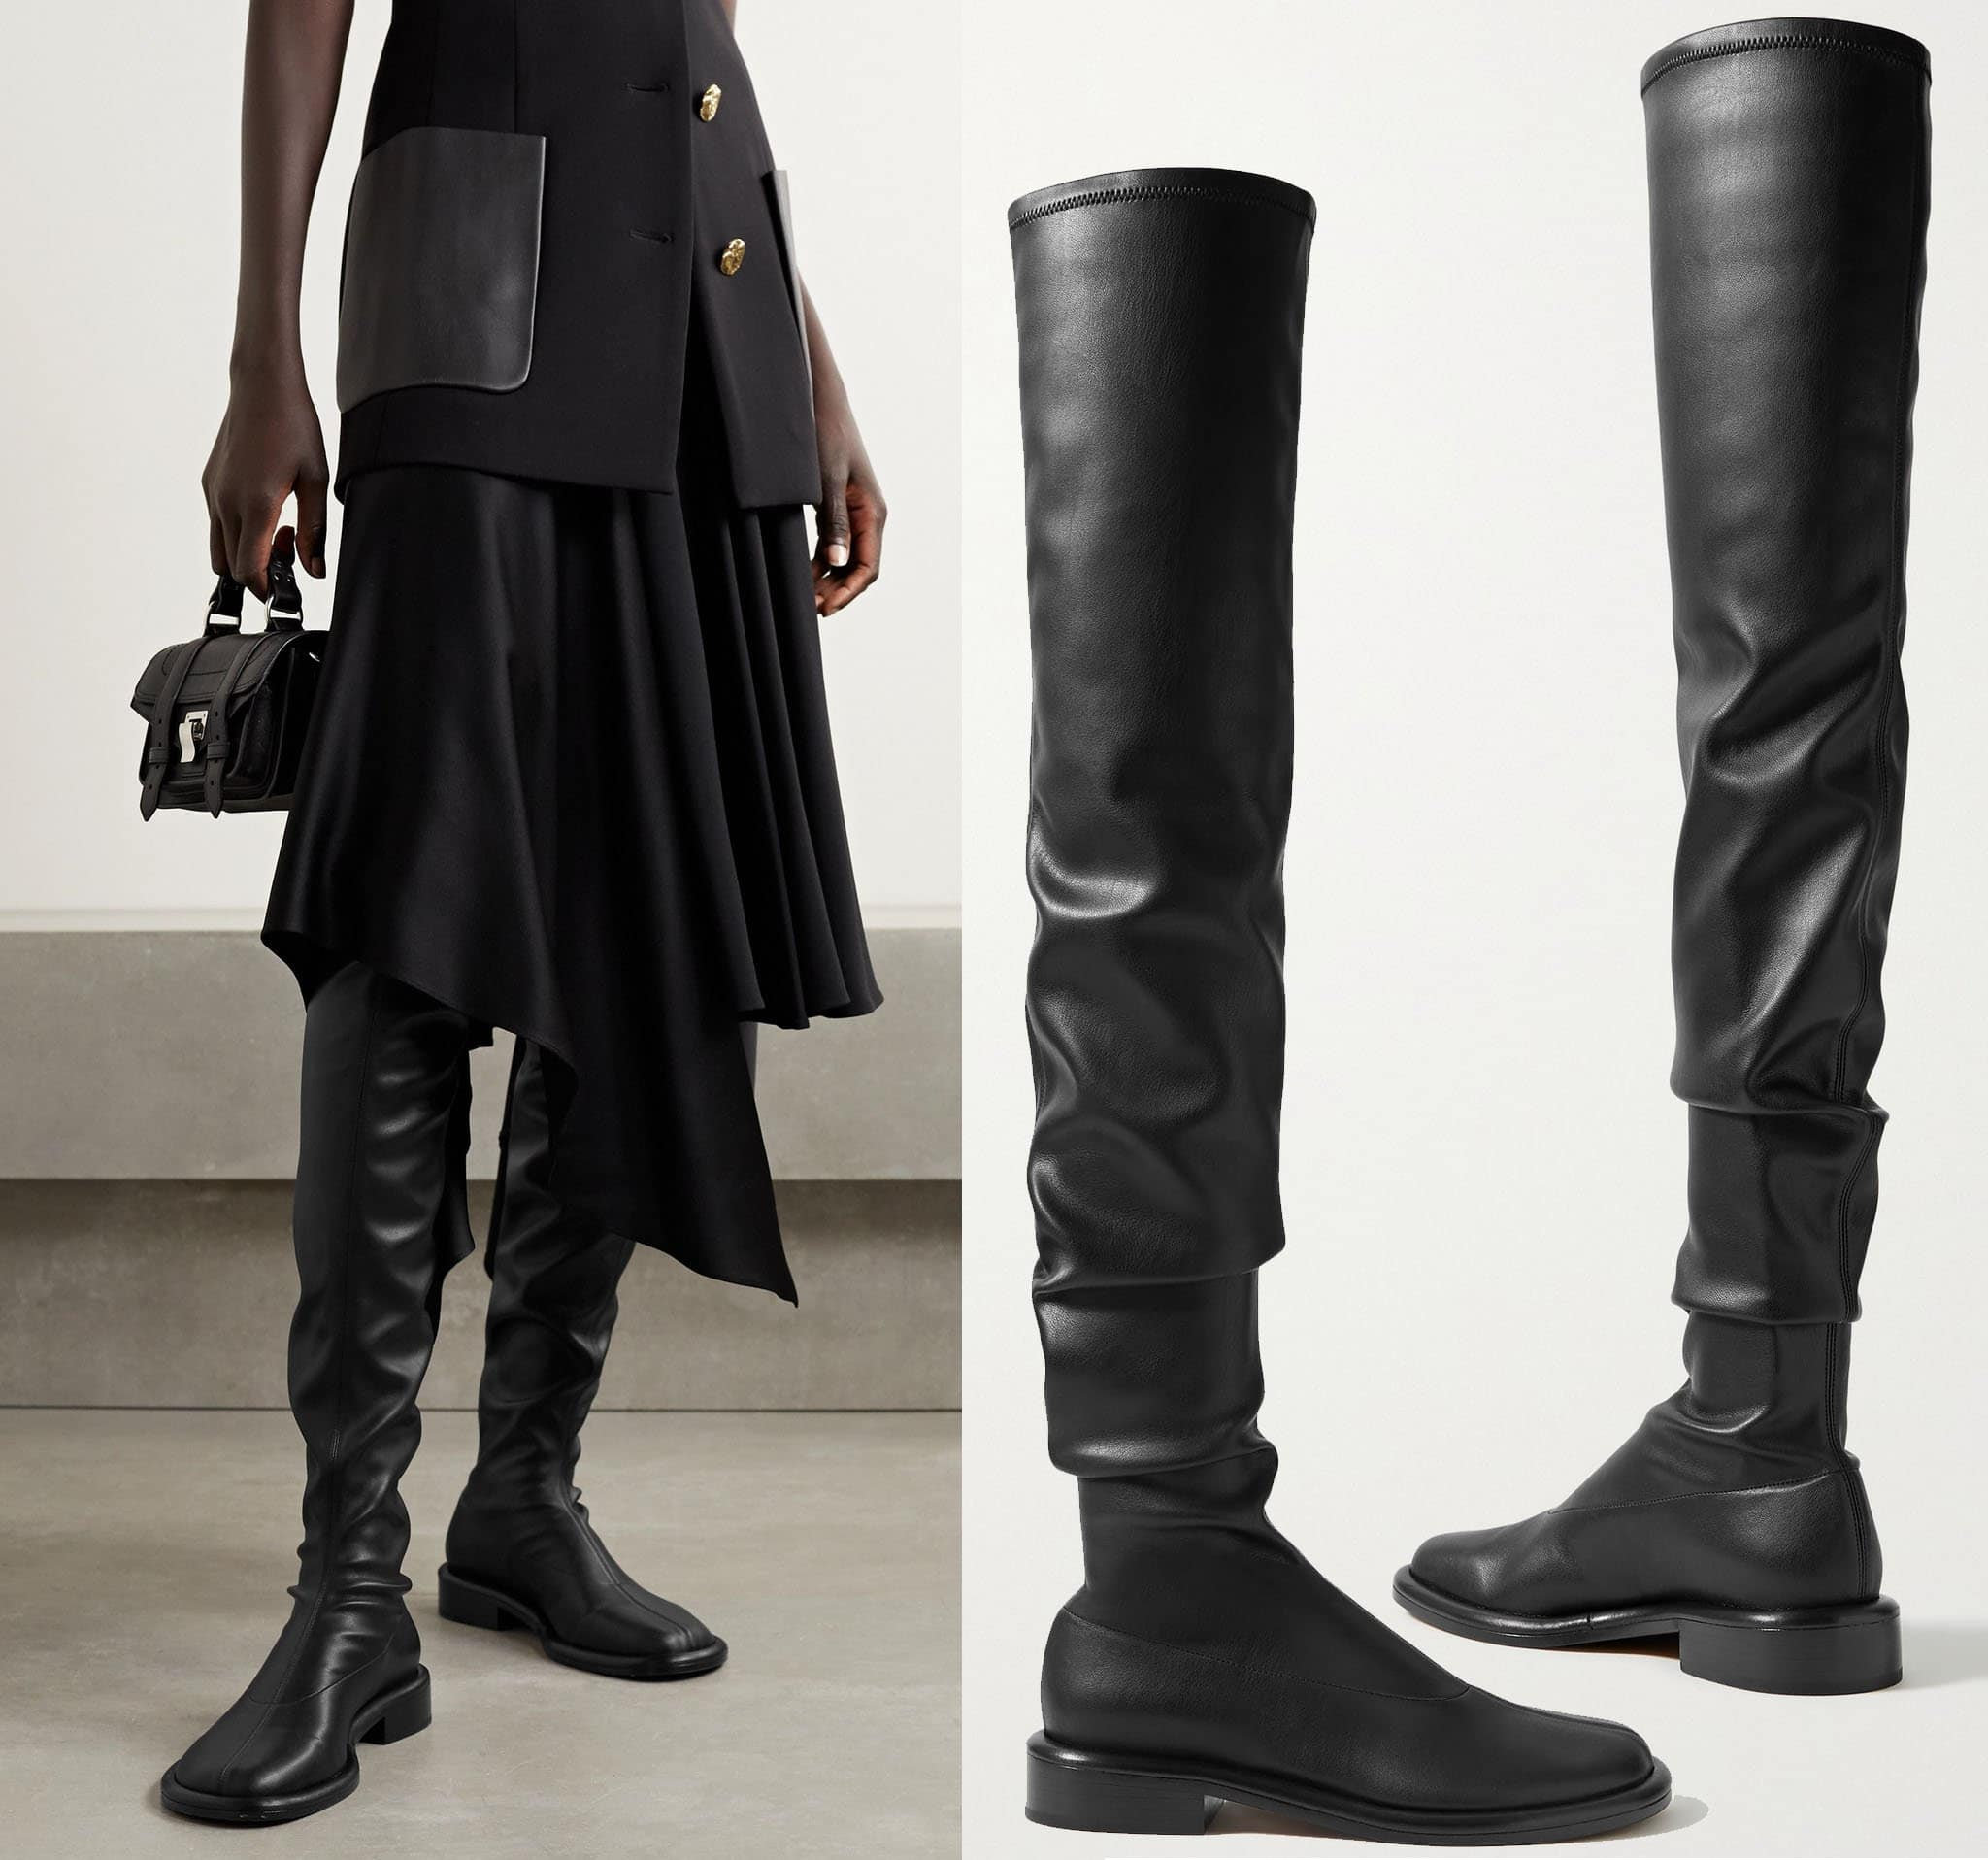 The Boyd by Proenza Schouler is made in Italy from supple black leather and feature a slouchy silhouette and comfortable rounded toes